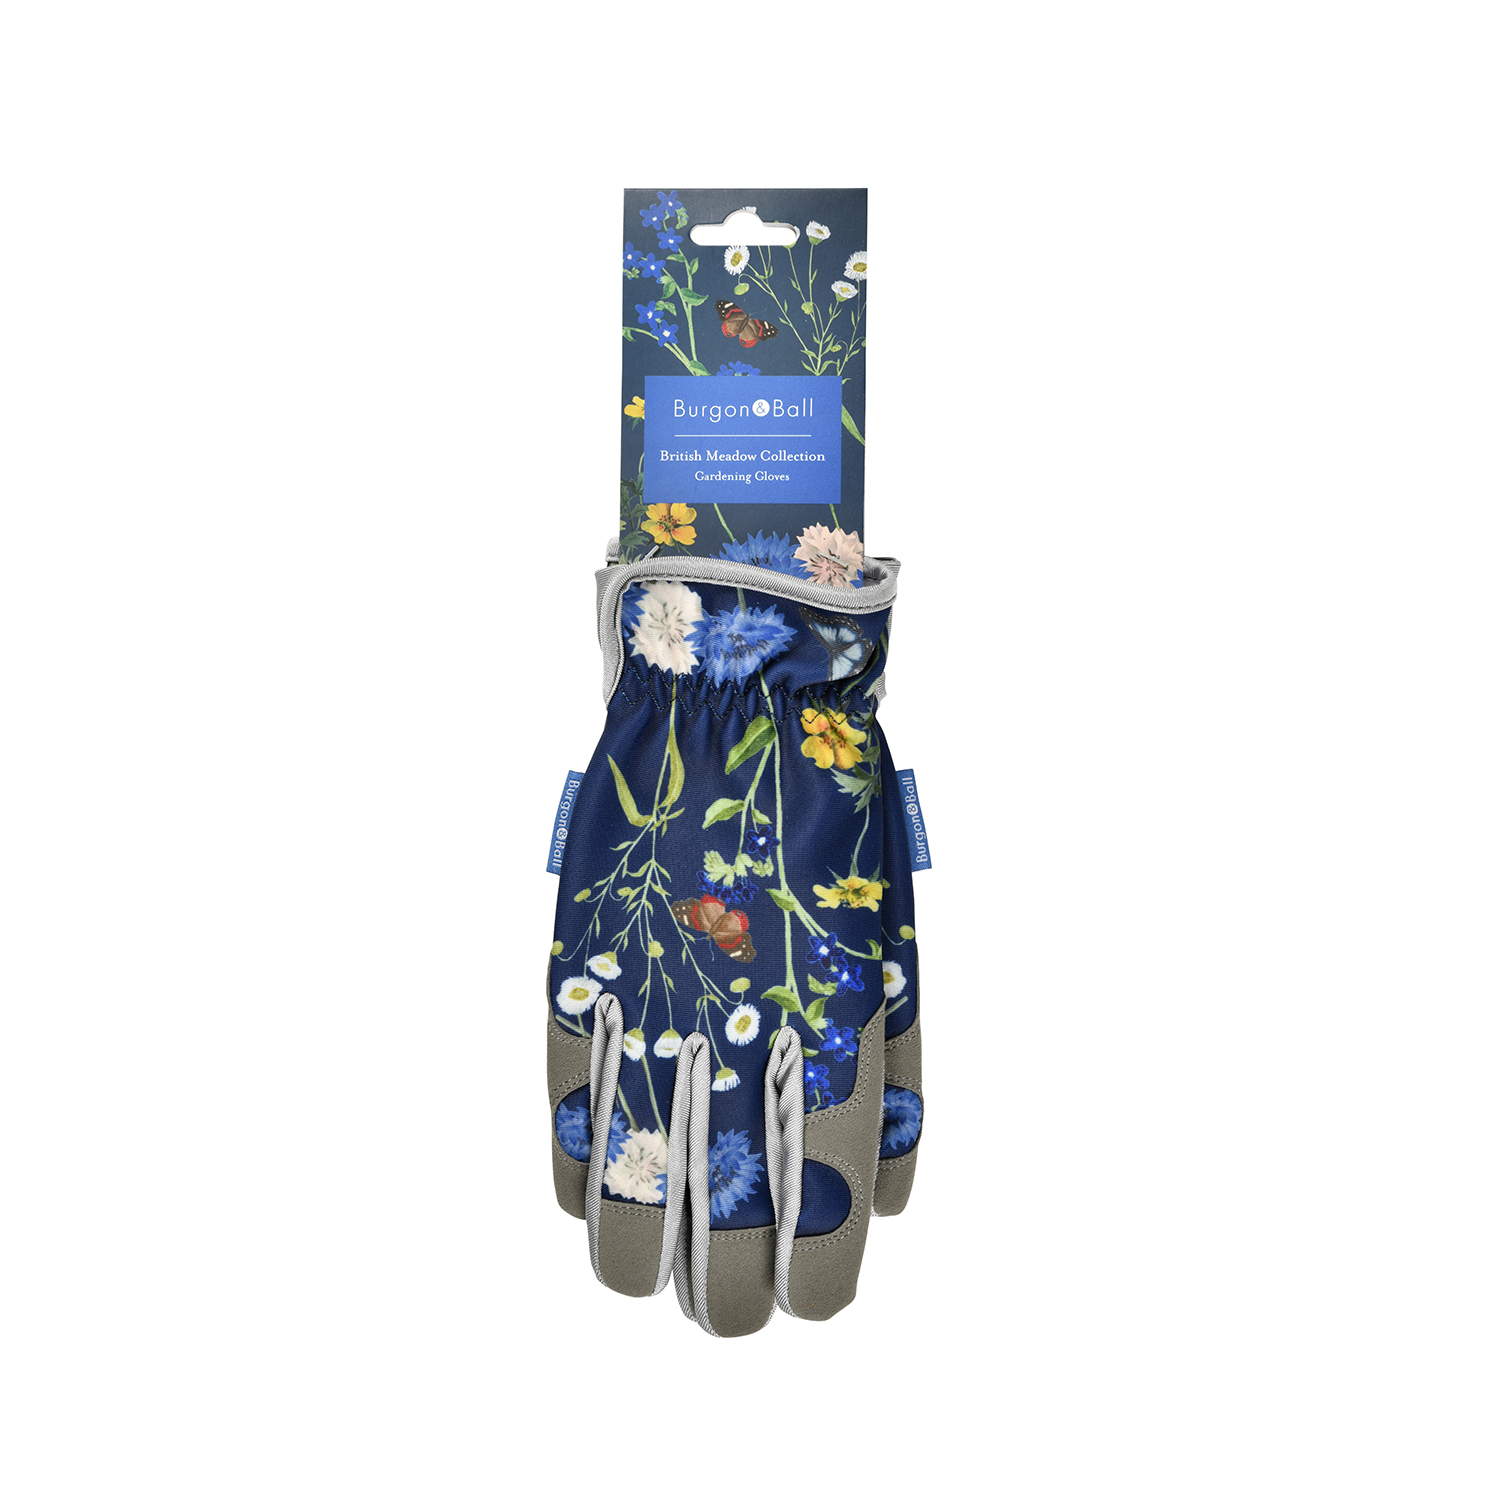 Burgon & Ball – RHS British Meadow Gloves